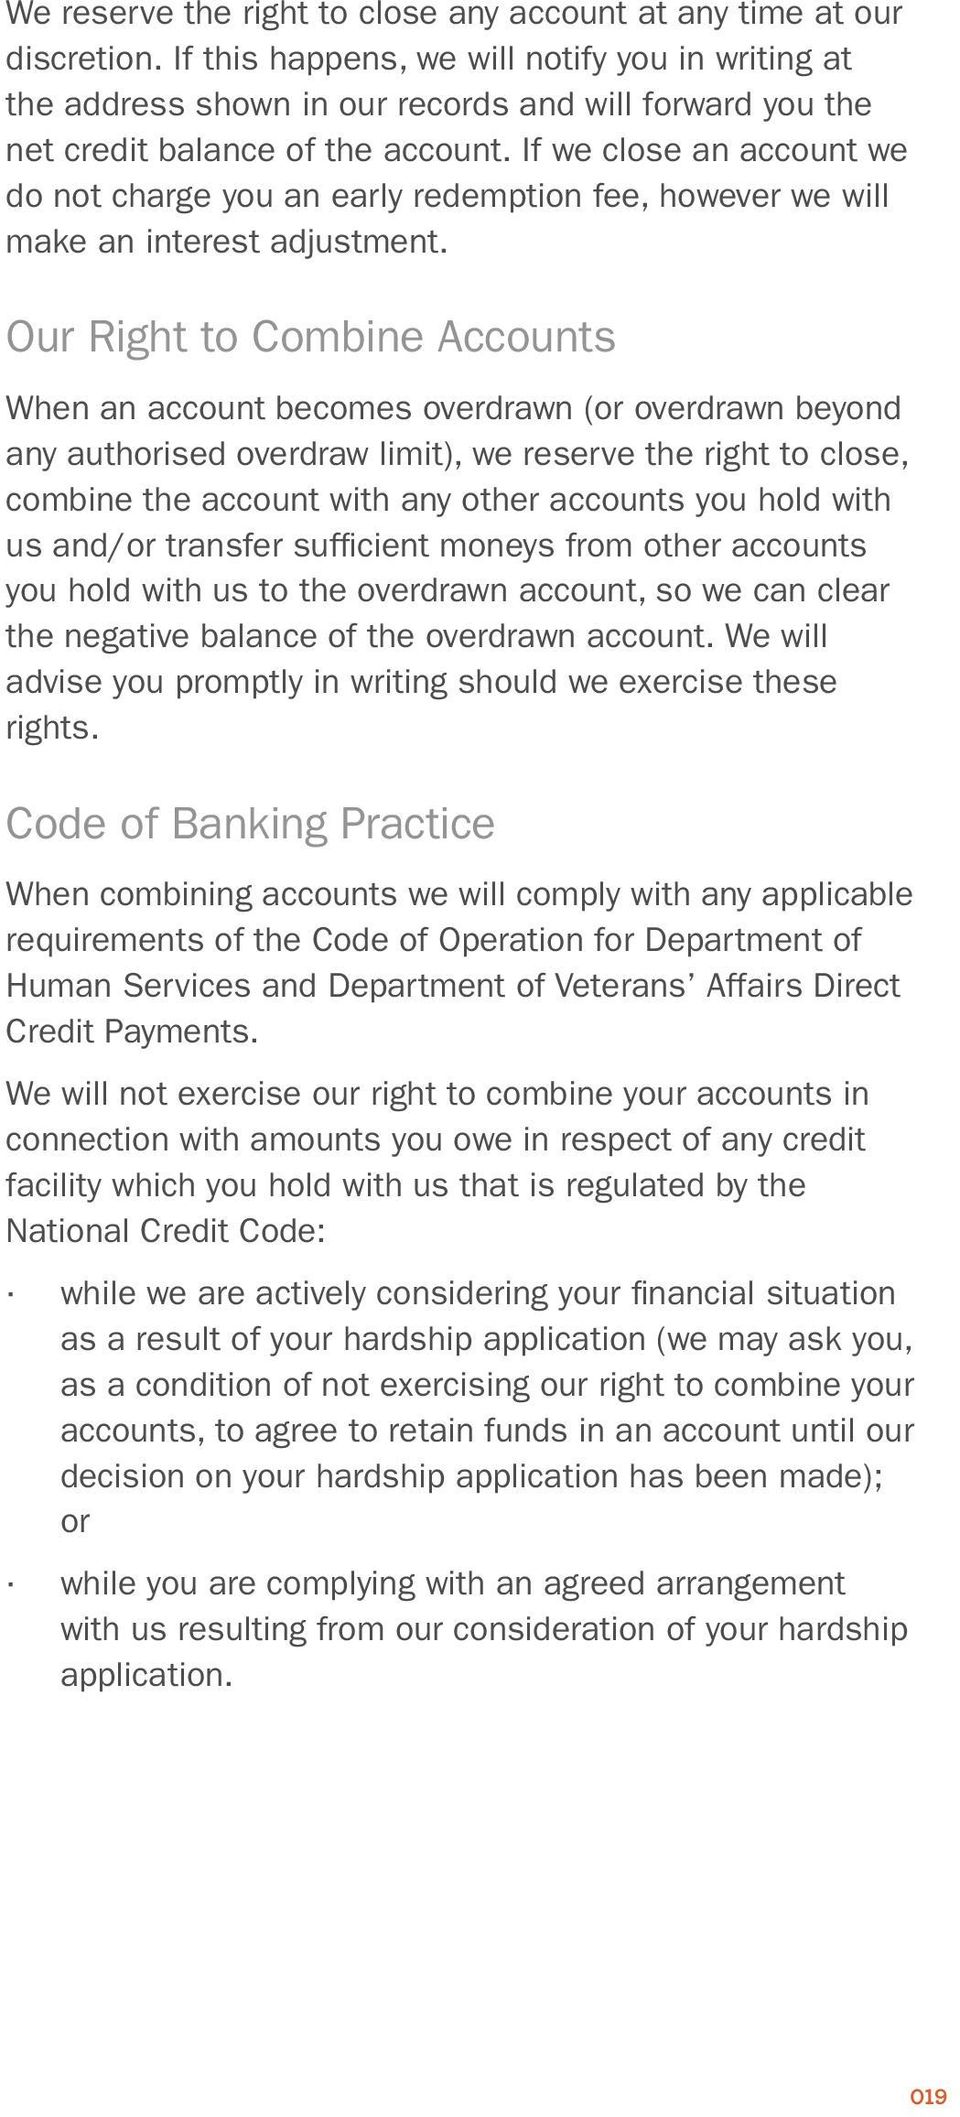 If we close an account we do not charge you an early redemption fee, however we will make an interest adjustment.